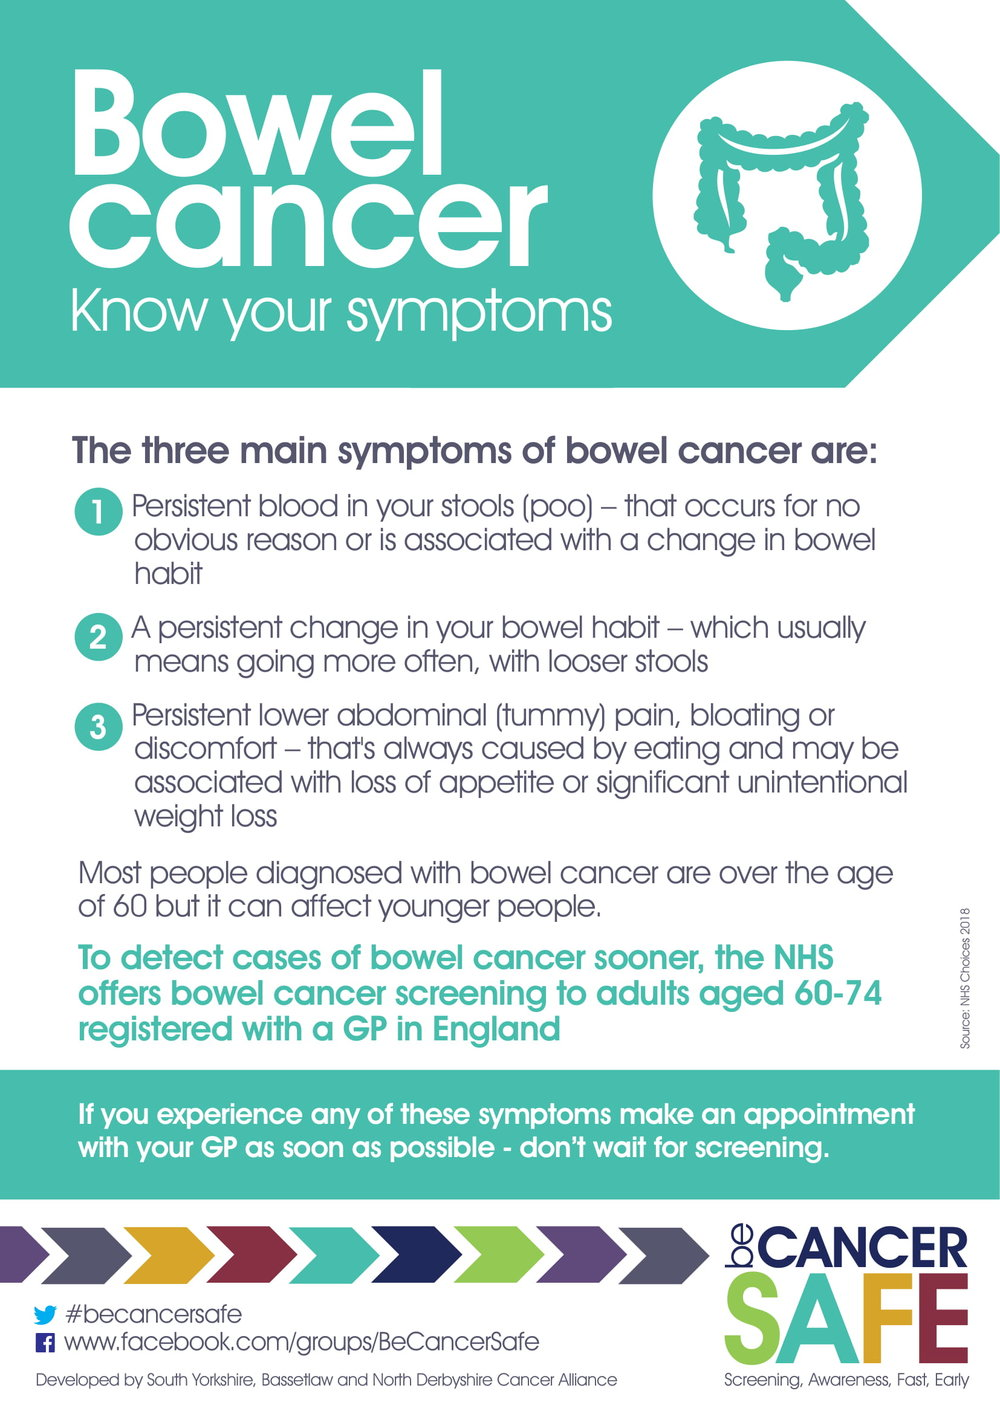 bowel_cancer_poster_copy-1.jpg